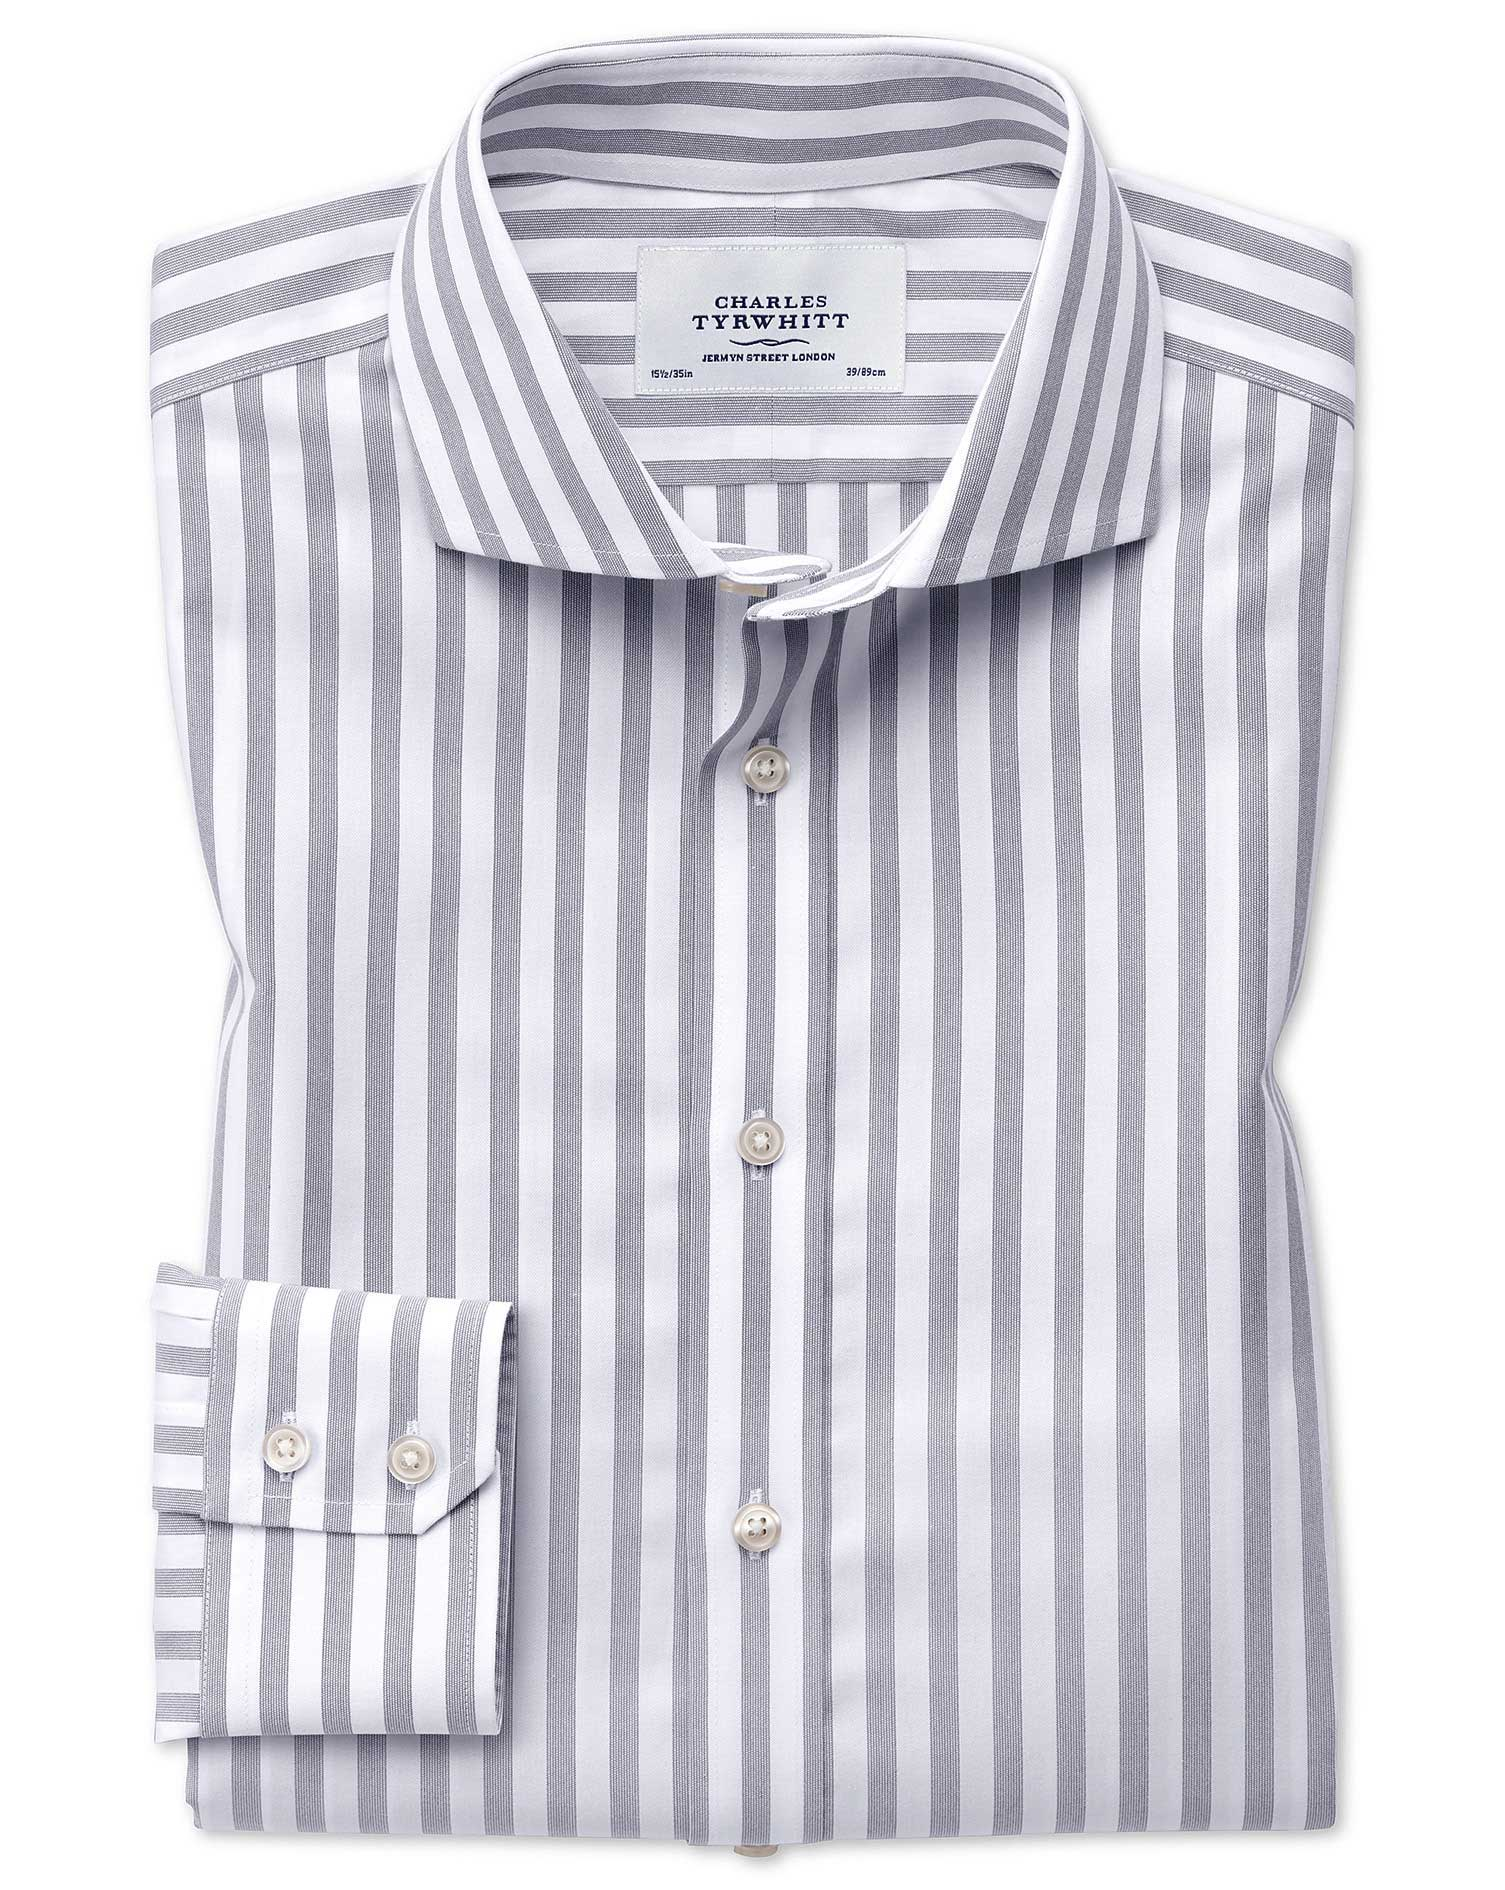 Slim Fit Cutaway Non-Iron Wide Stripe Grey Cotton Formal Shirt Single Cuff Size 16.5/36 by Charles T